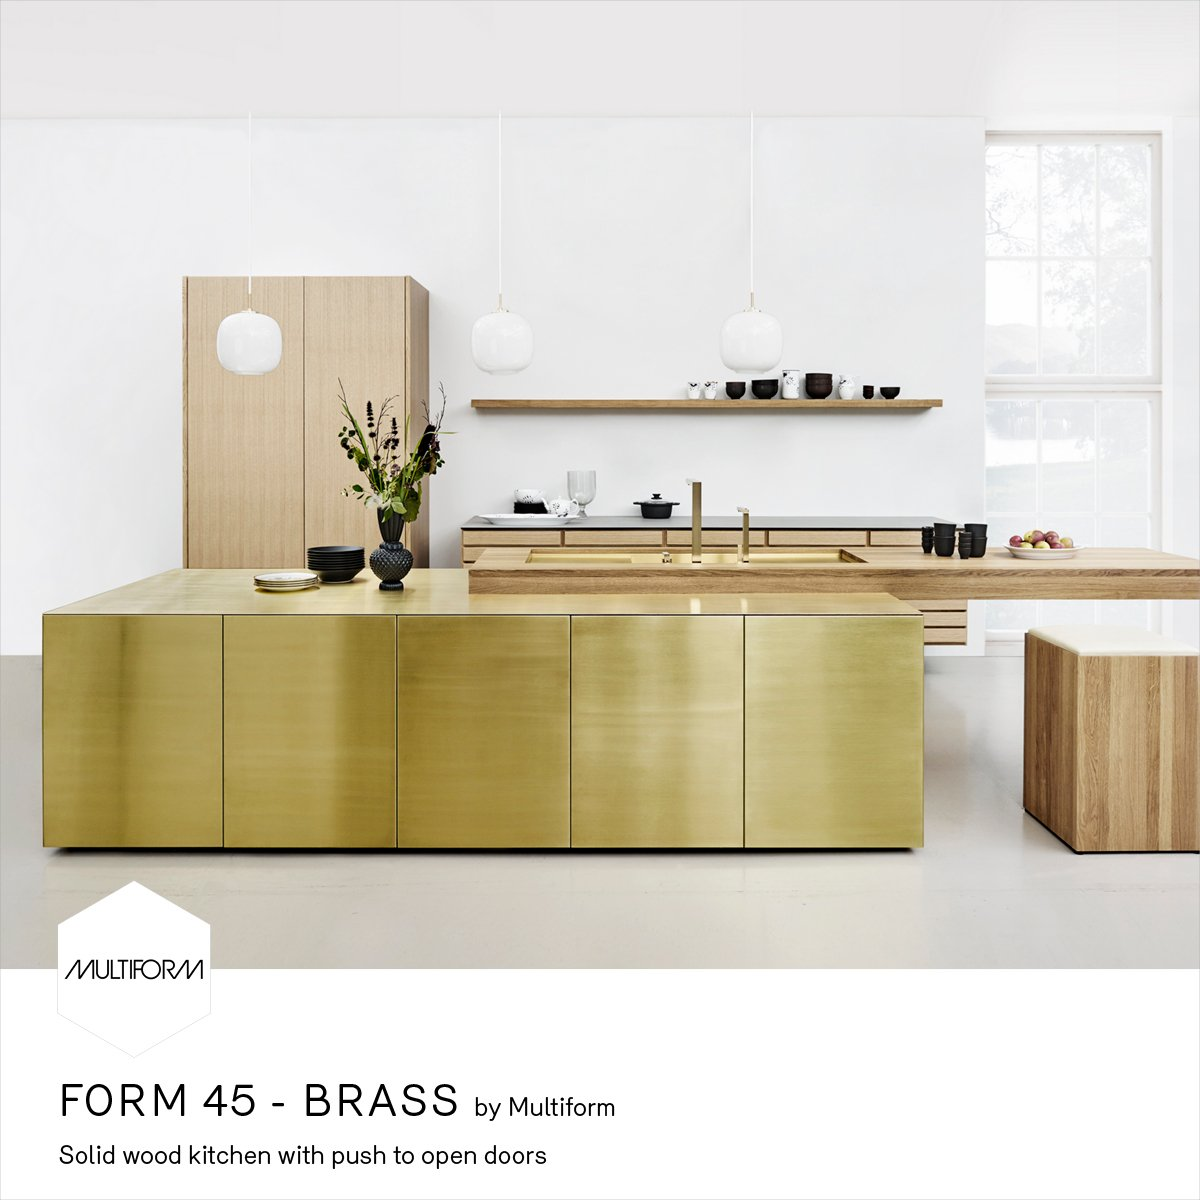 Kitchen Open Door Design Solid Wood Kitchen With Push To Open Doors Form 45 Brass By